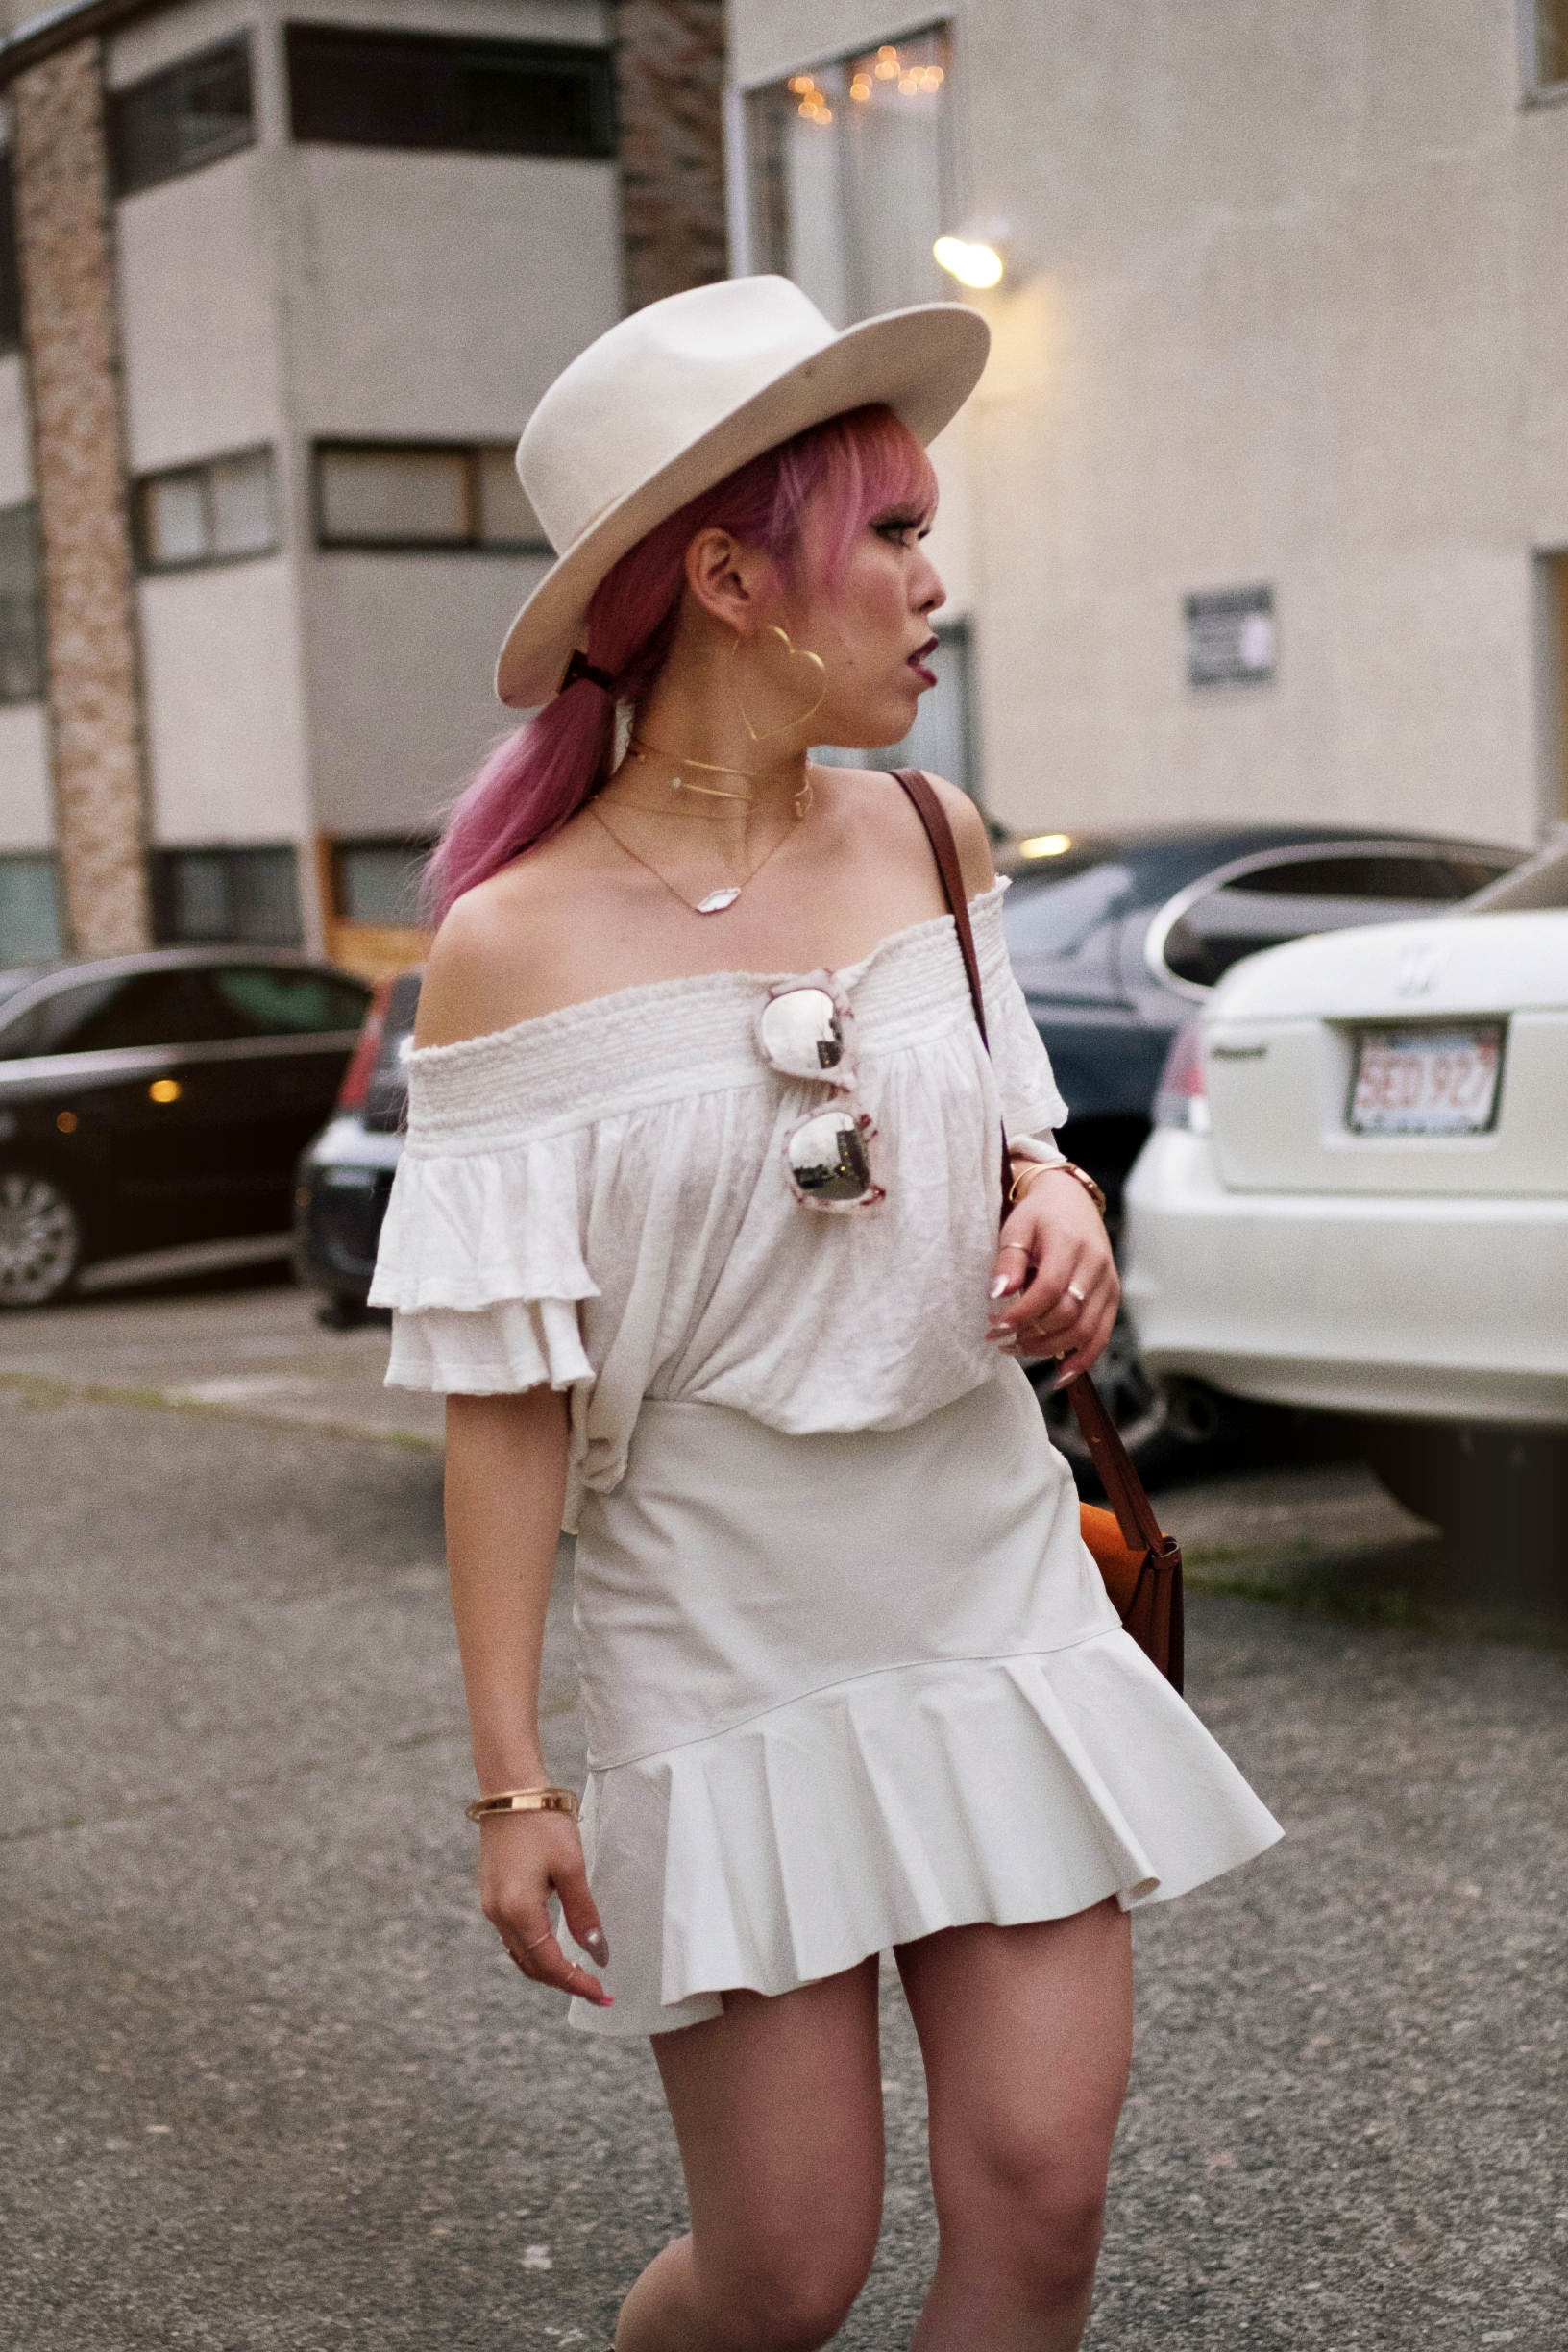 Free People Off the Shoulder top-Zara faux leather mini skirt-lack of color white fedora-free people mirrored sunglasses-chloe mini faye suede bag-daniel wellington watch-milani black cherry lipstick-asos lace up point toe pumps python print-aika's love closet-seattle fashion style blogger-japanese-pink hair 7